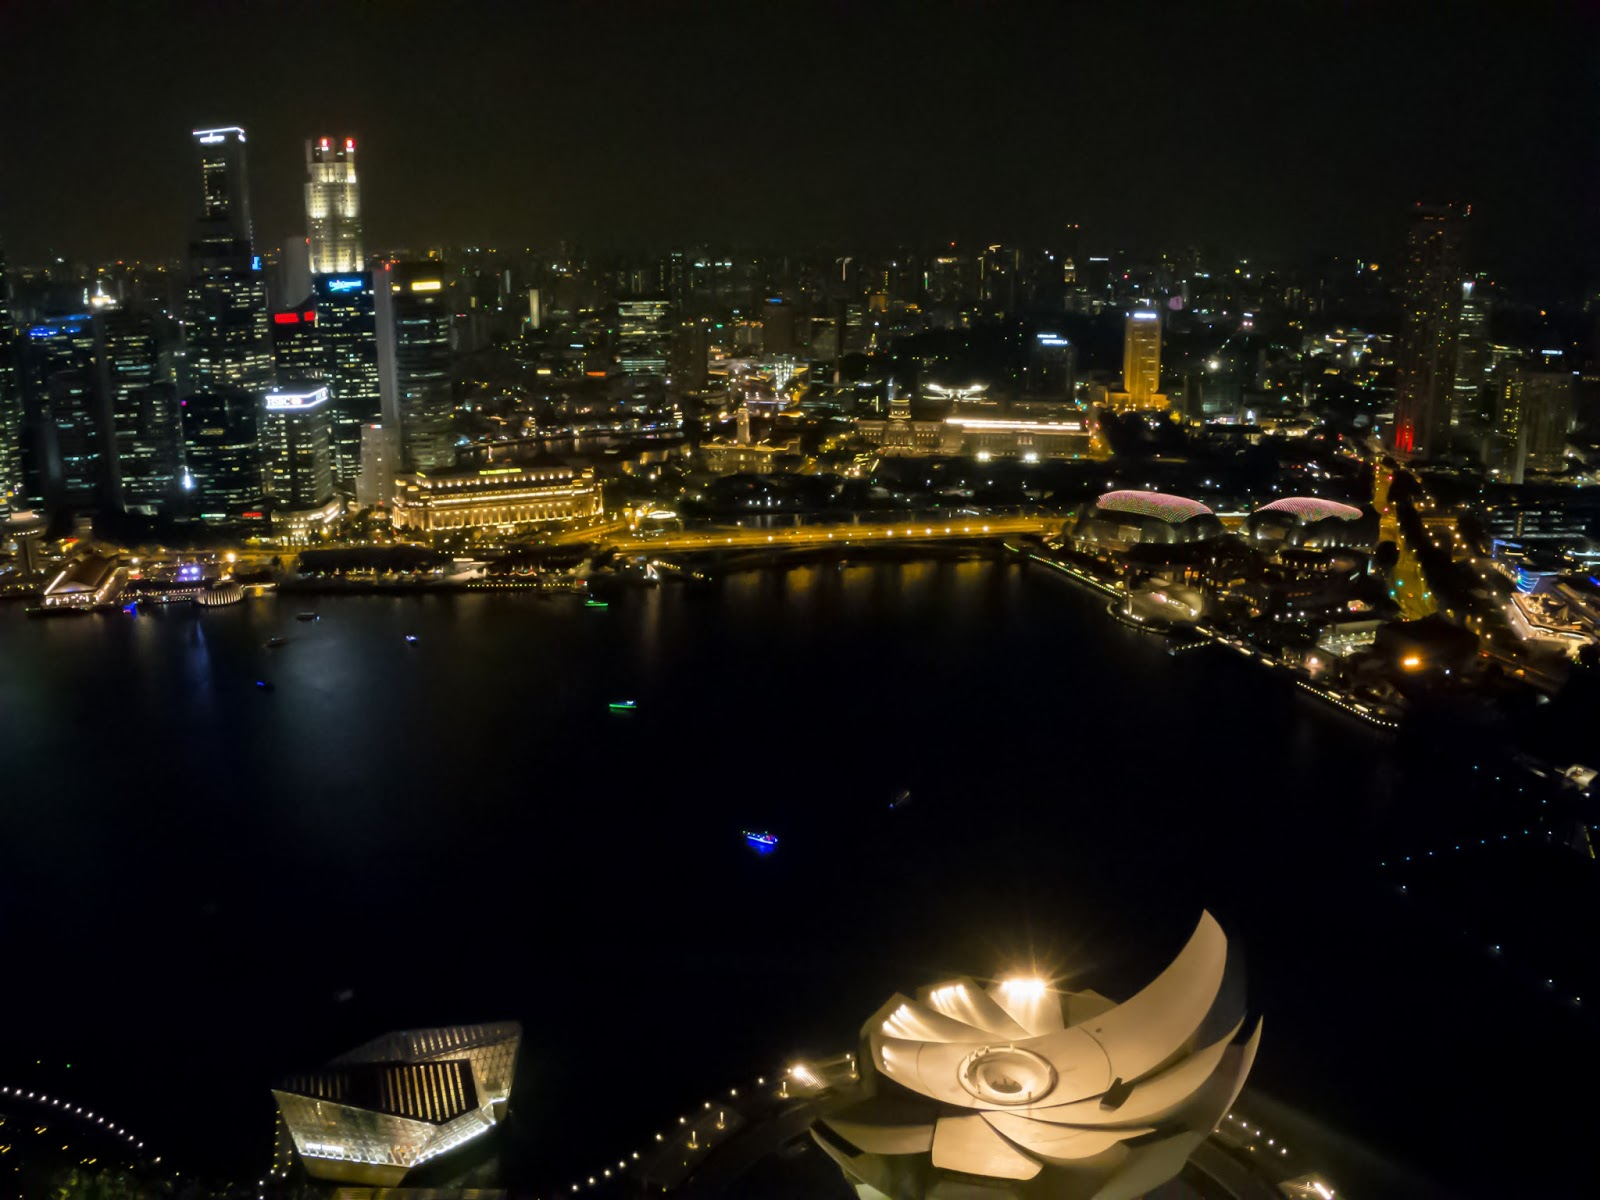 LookOn, Singapore, Republic of Singapore, the Lion City, the Garden City, and the Red Dot, megapolis, Asia, travel blog, traveler blogger, traveling, wanderlust, vacation